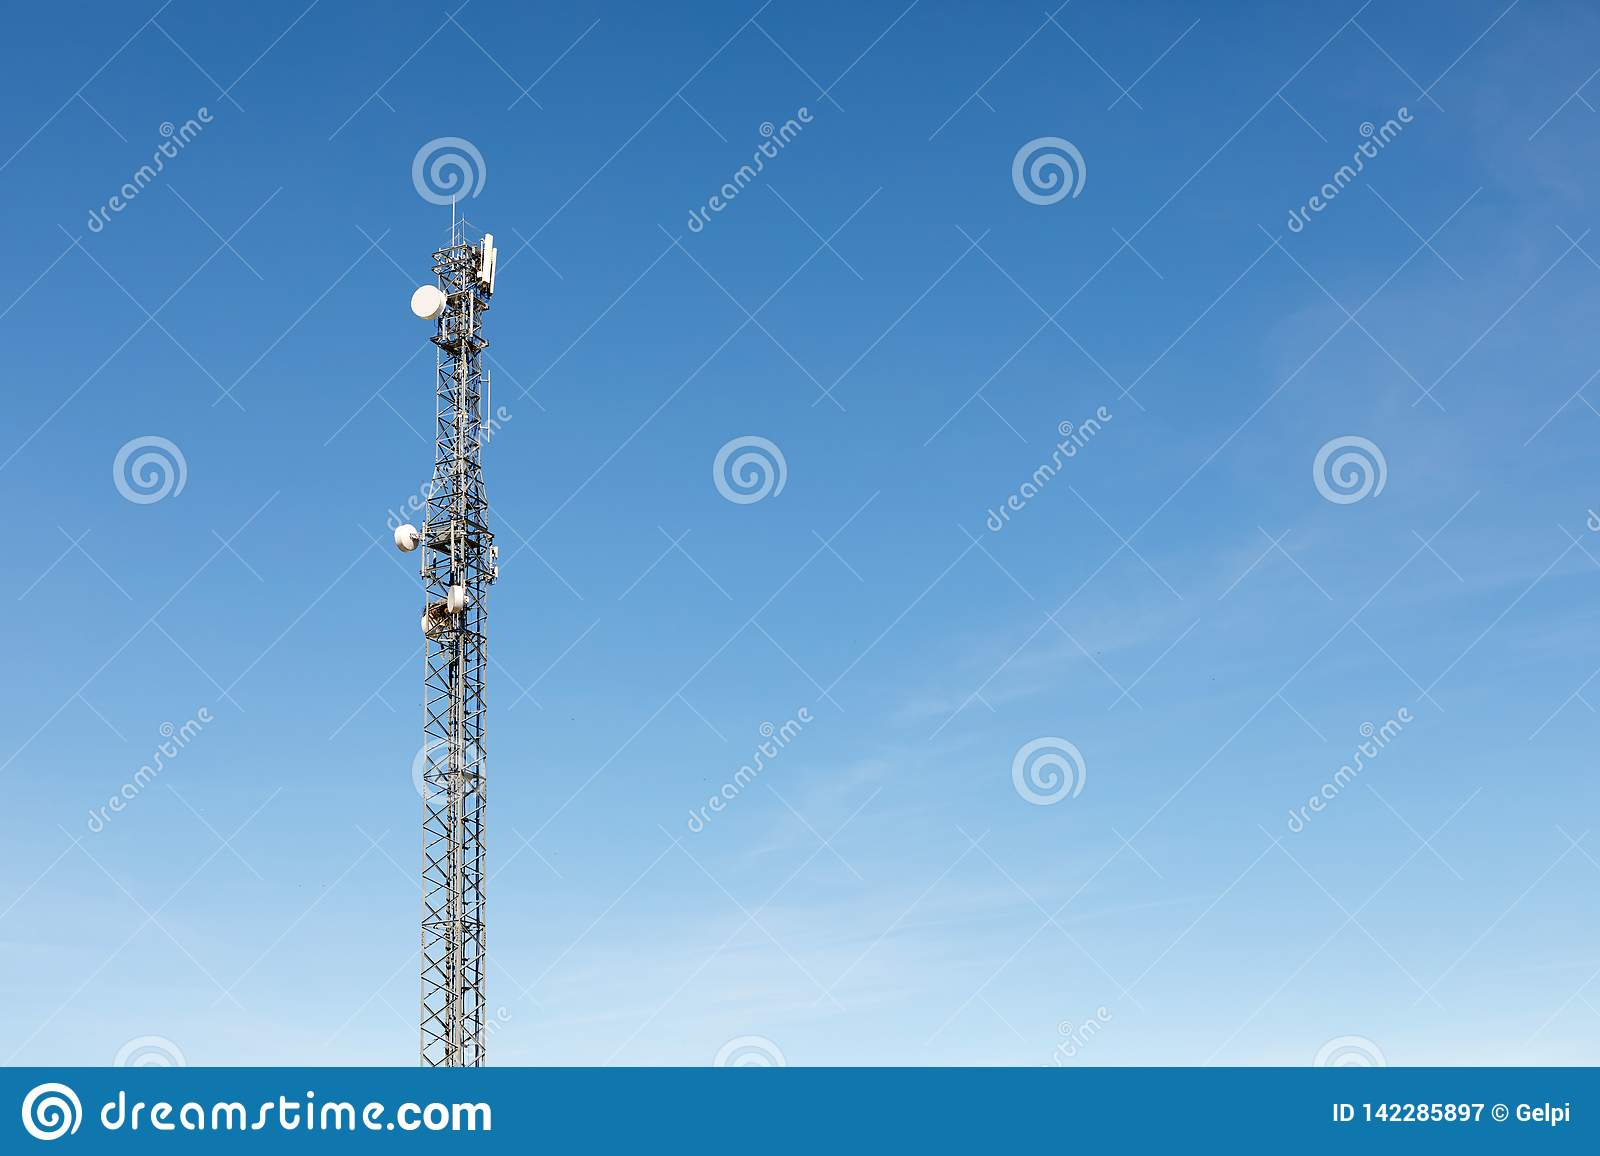 Antenna tower for communication